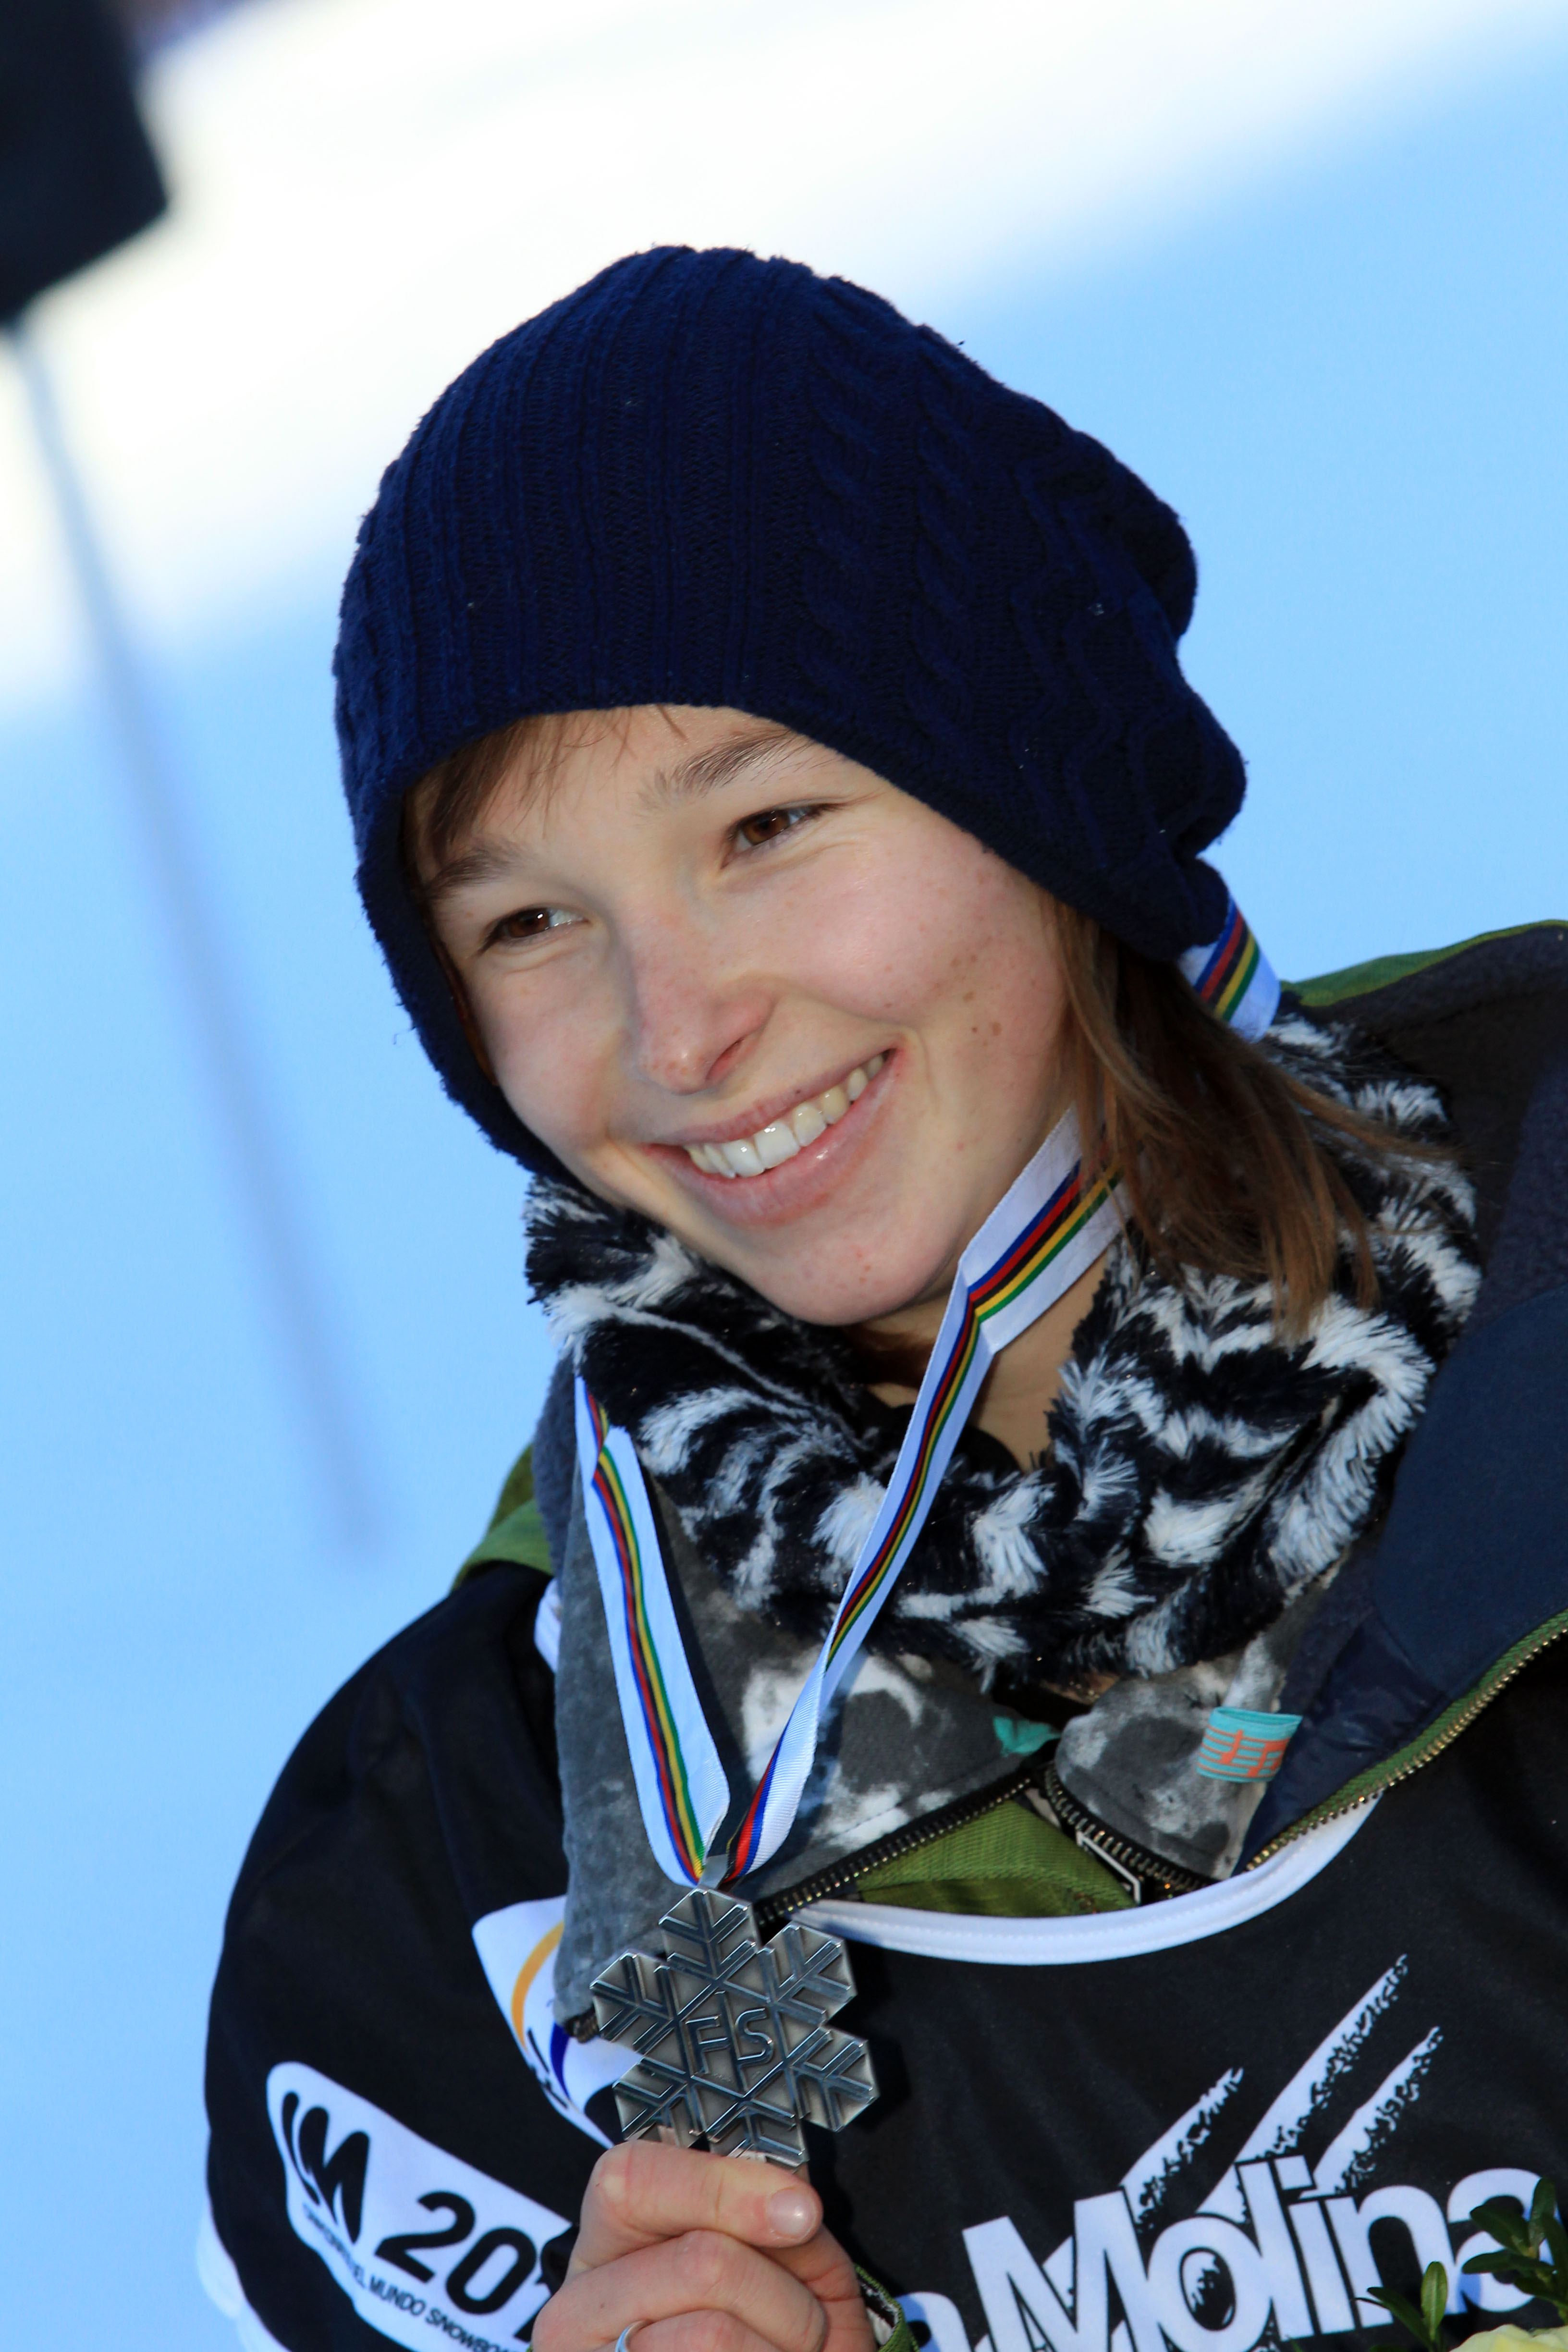 FIS Snowboard World Championships - Men and Women's Slopestyle